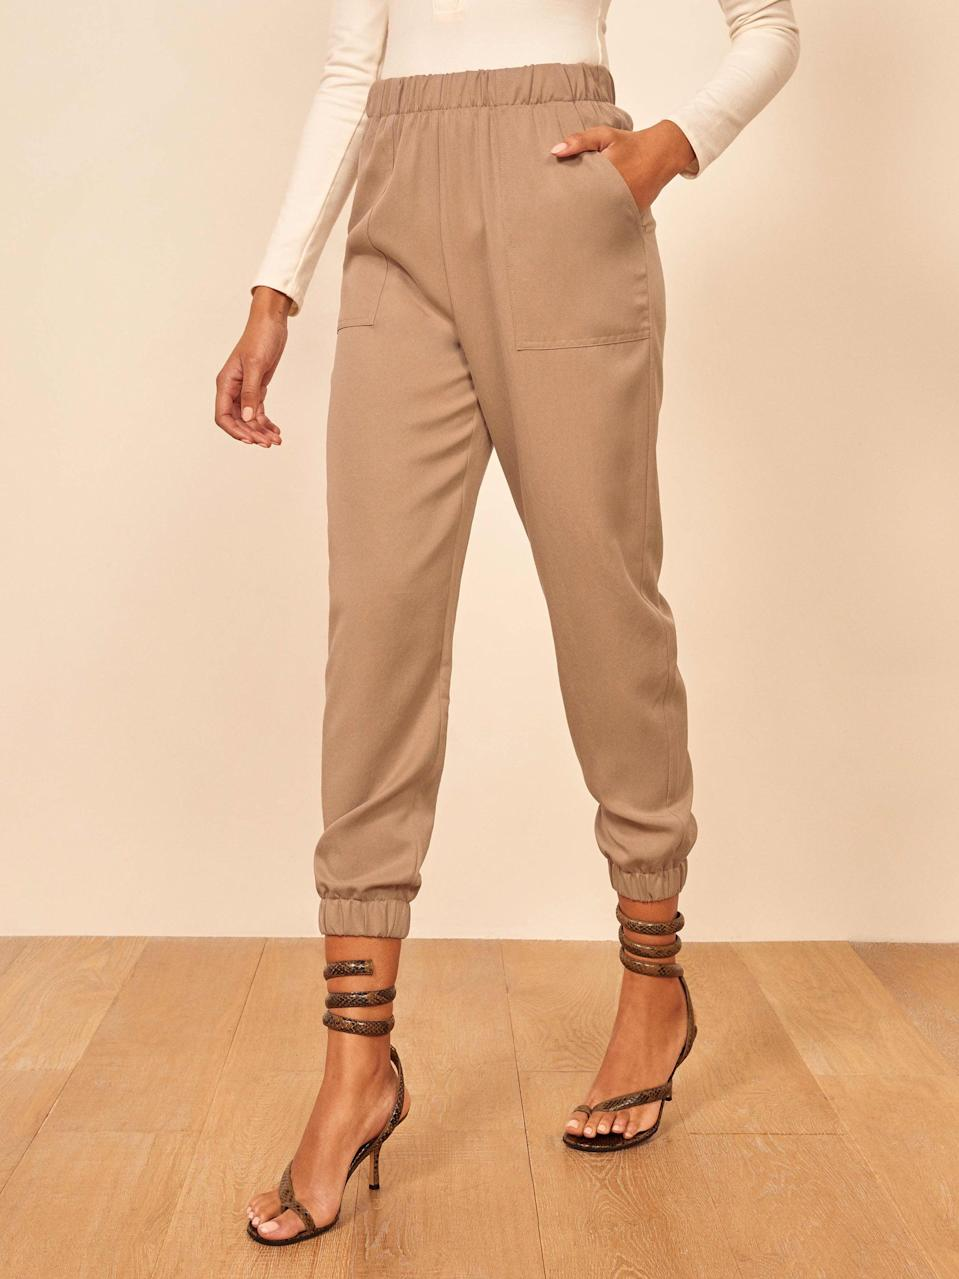 "<p>The <a href=""https://www.popsugar.com/buy/Reformation-Montana-Pant-542849?p_name=Reformation%20Montana%20Pant&retailer=thereformation.com&pid=542849&price=178&evar1=fab%3Aus&evar9=47477665&evar98=https%3A%2F%2Fwww.popsugar.com%2Ffashion%2Fphoto-gallery%2F47477665%2Fimage%2F47477670%2FReformation-Montana-Pant&list1=pants%2Ctrousers%2Cfashion%20shopping%2Ccomfortable%20clothes&prop13=api&pdata=1"" class=""link rapid-noclick-resp"" rel=""nofollow noopener"" target=""_blank"" data-ylk=""slk:Reformation Montana Pant"">Reformation Montana Pant</a> ($178) also comes in black.</p>"